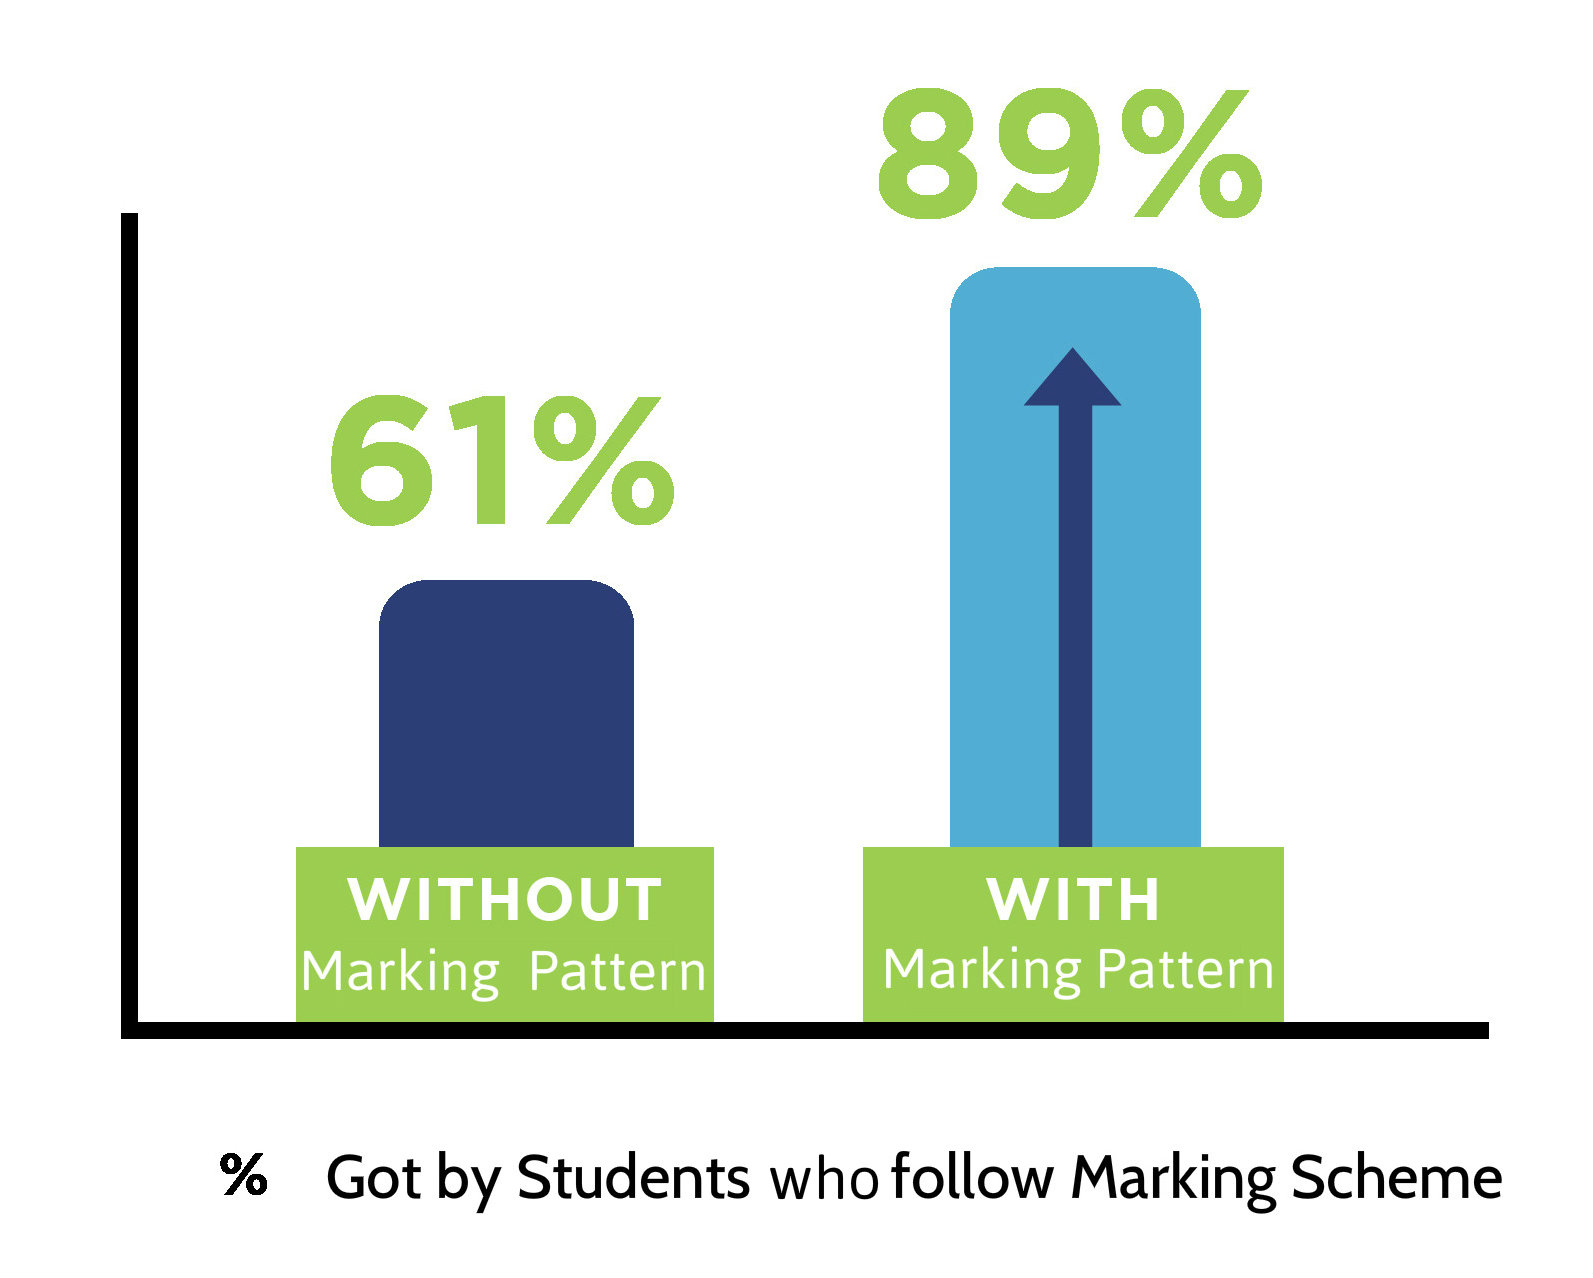 % got by students who follow marking scheme